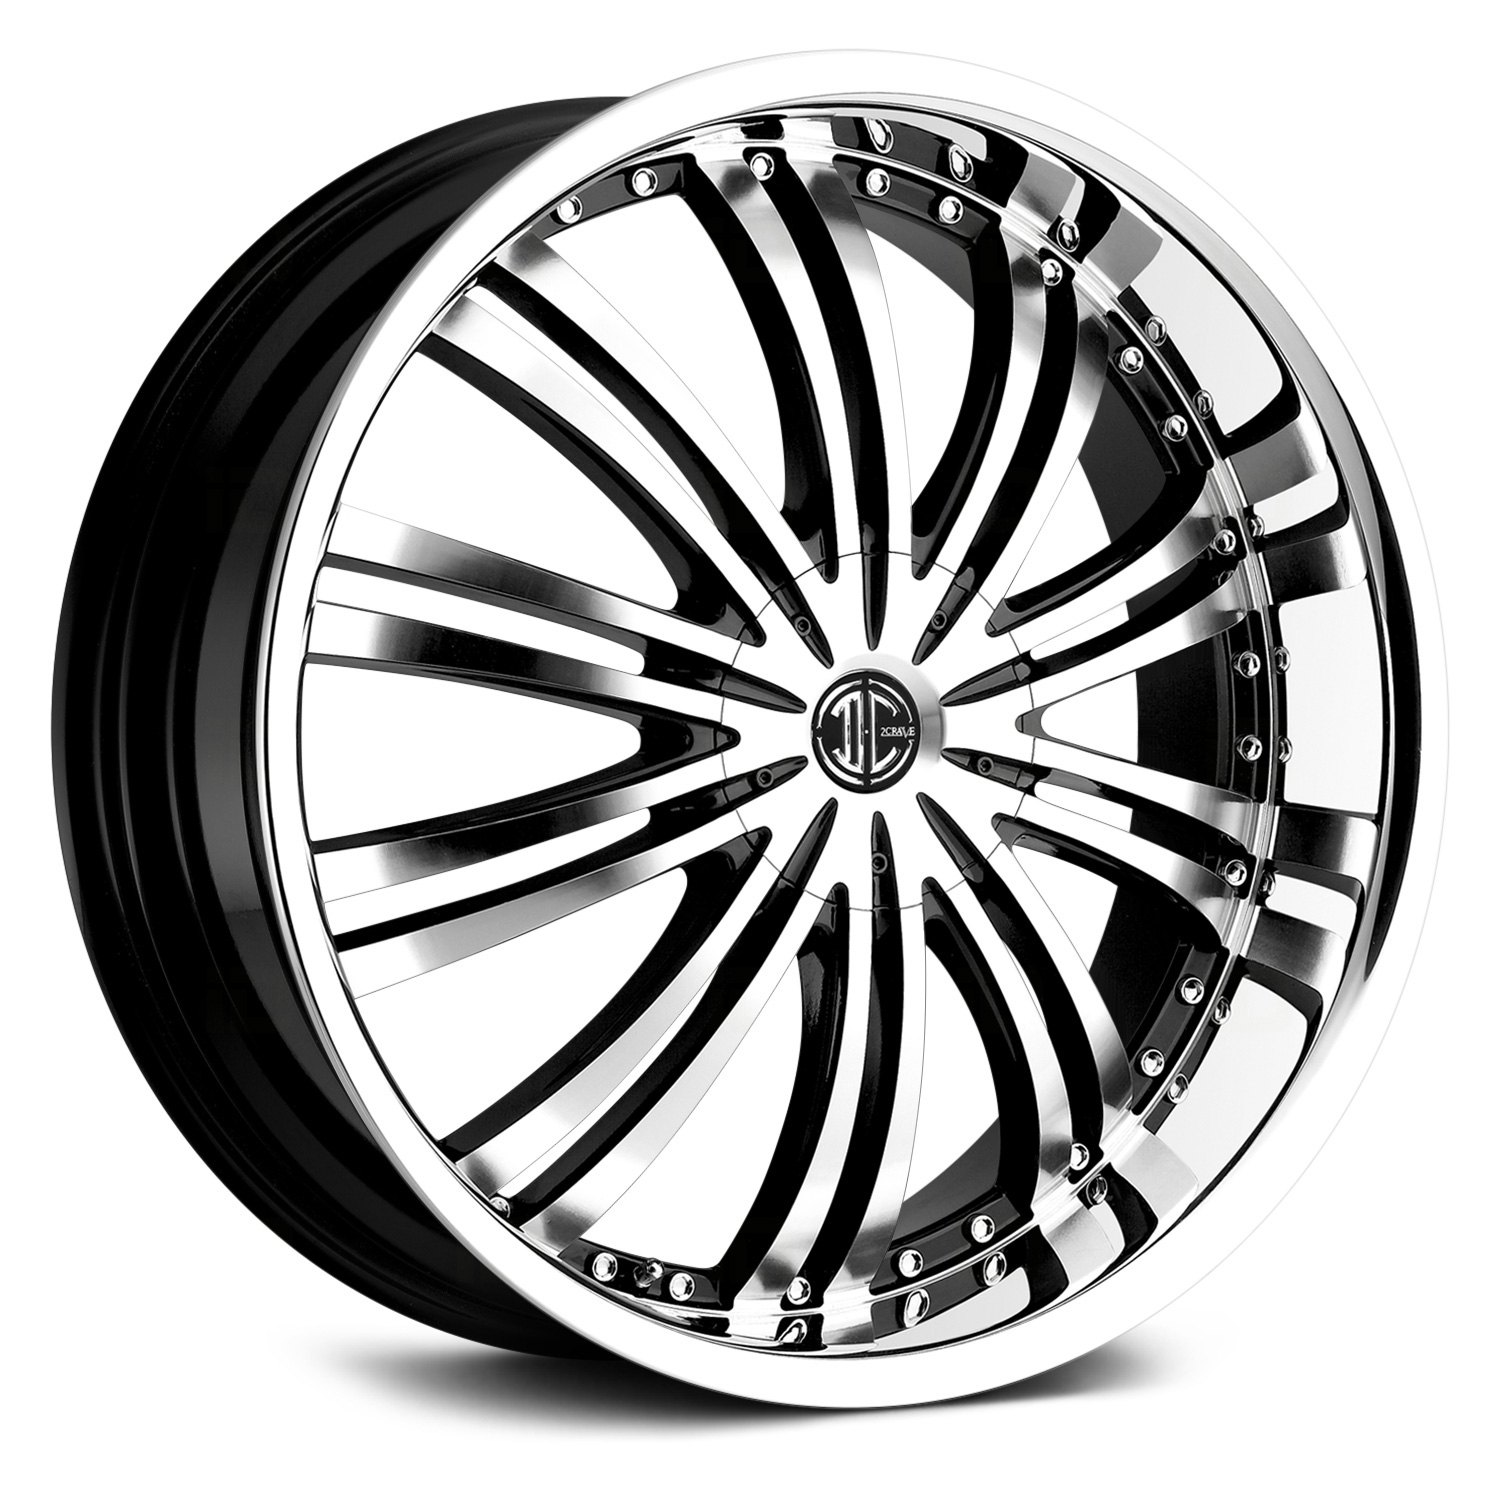 2 Crave 174 No 1 Wheels Gloss Black With Machined Face And